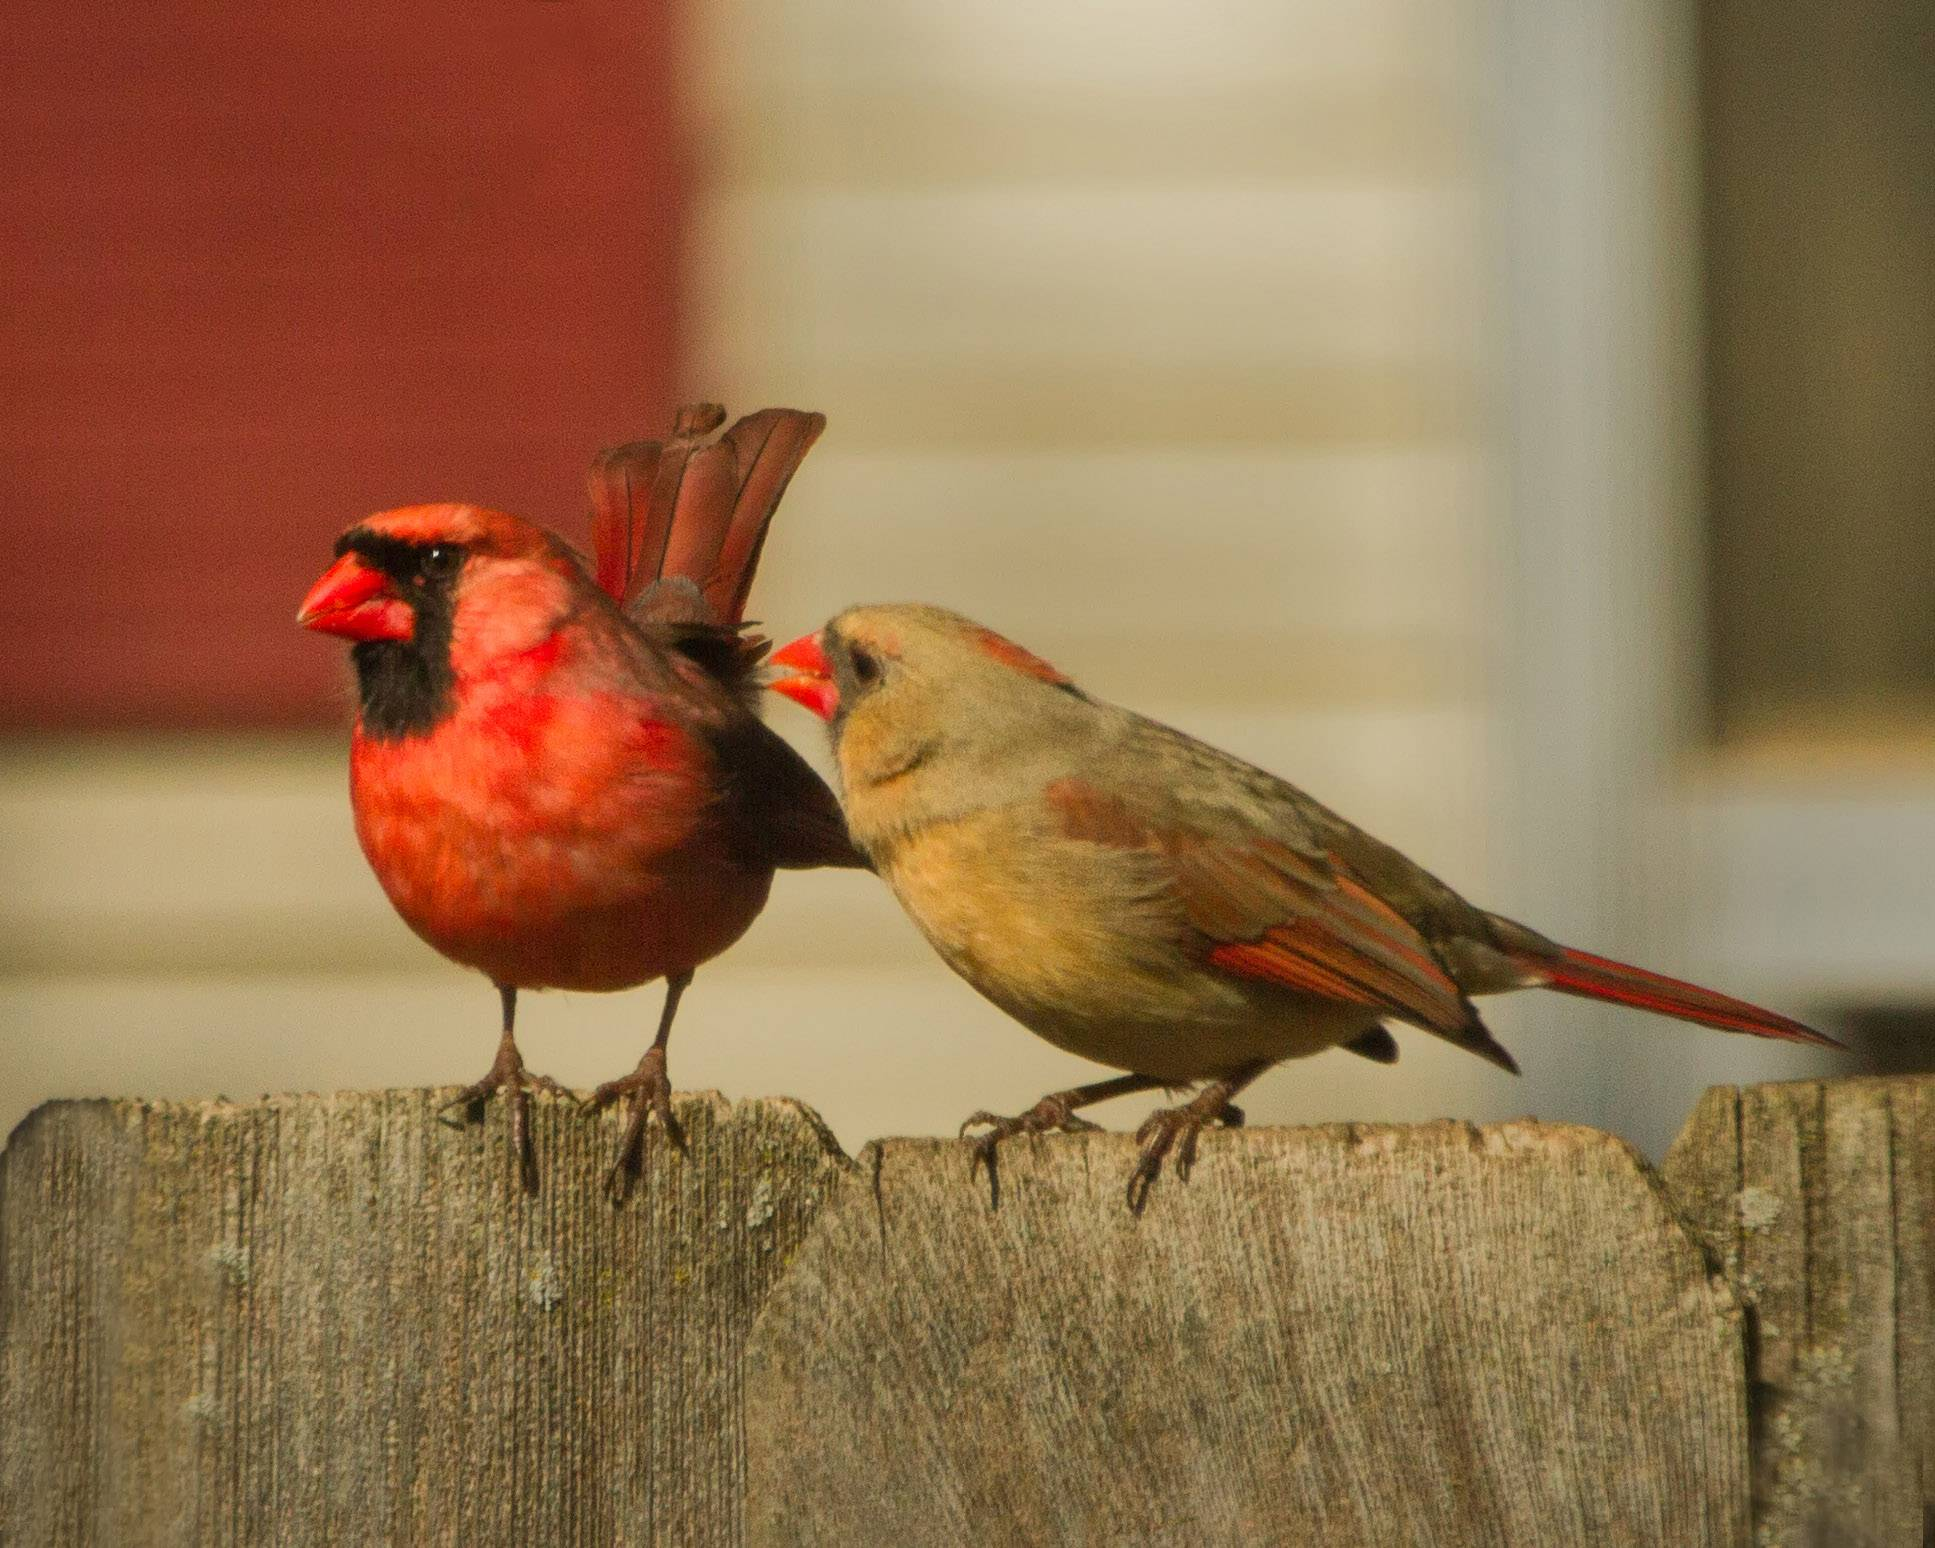 Two cardinals, male and female, mingle on a fence in an Arlington Heights backyard in April.